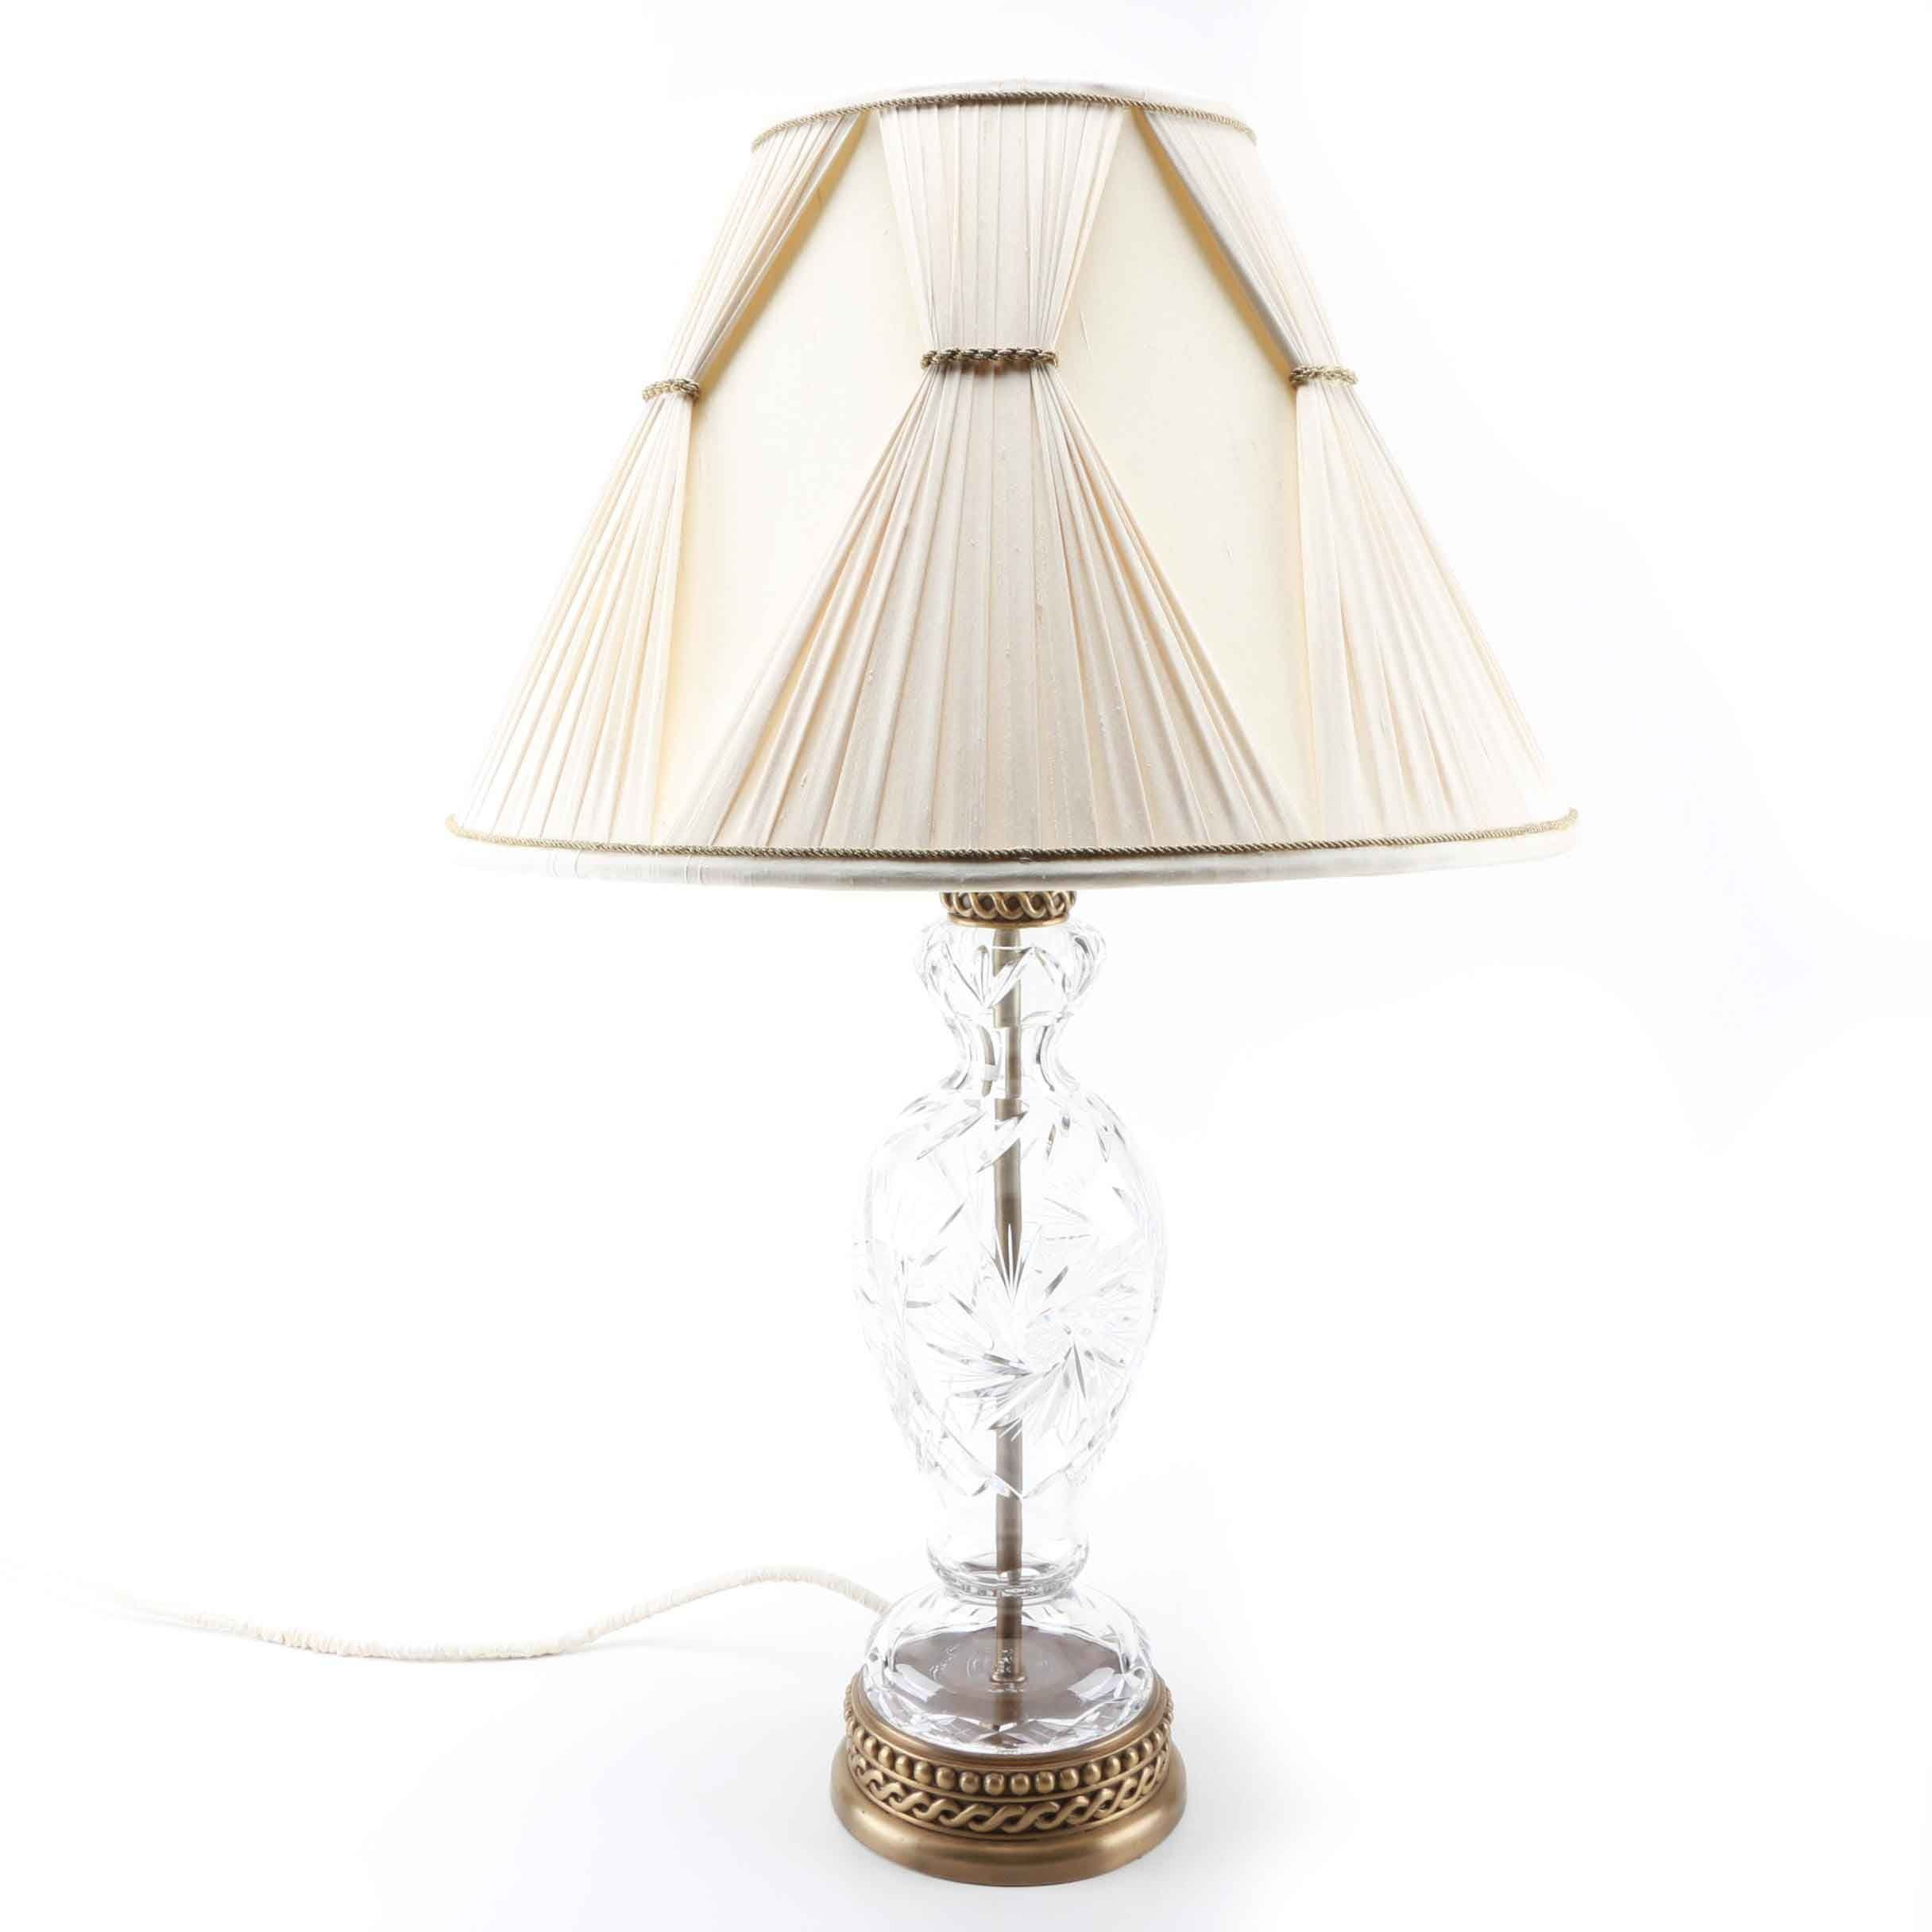 ... Maitland Smith Vintage L&s by Vintage L&s Retro Lighting Antique Light Fixtures In ...  sc 1 st  Class Library & 19+ [ Maitland Smith Vintage Lamps ] | Lamps On Pinterest Table ... azcodes.com